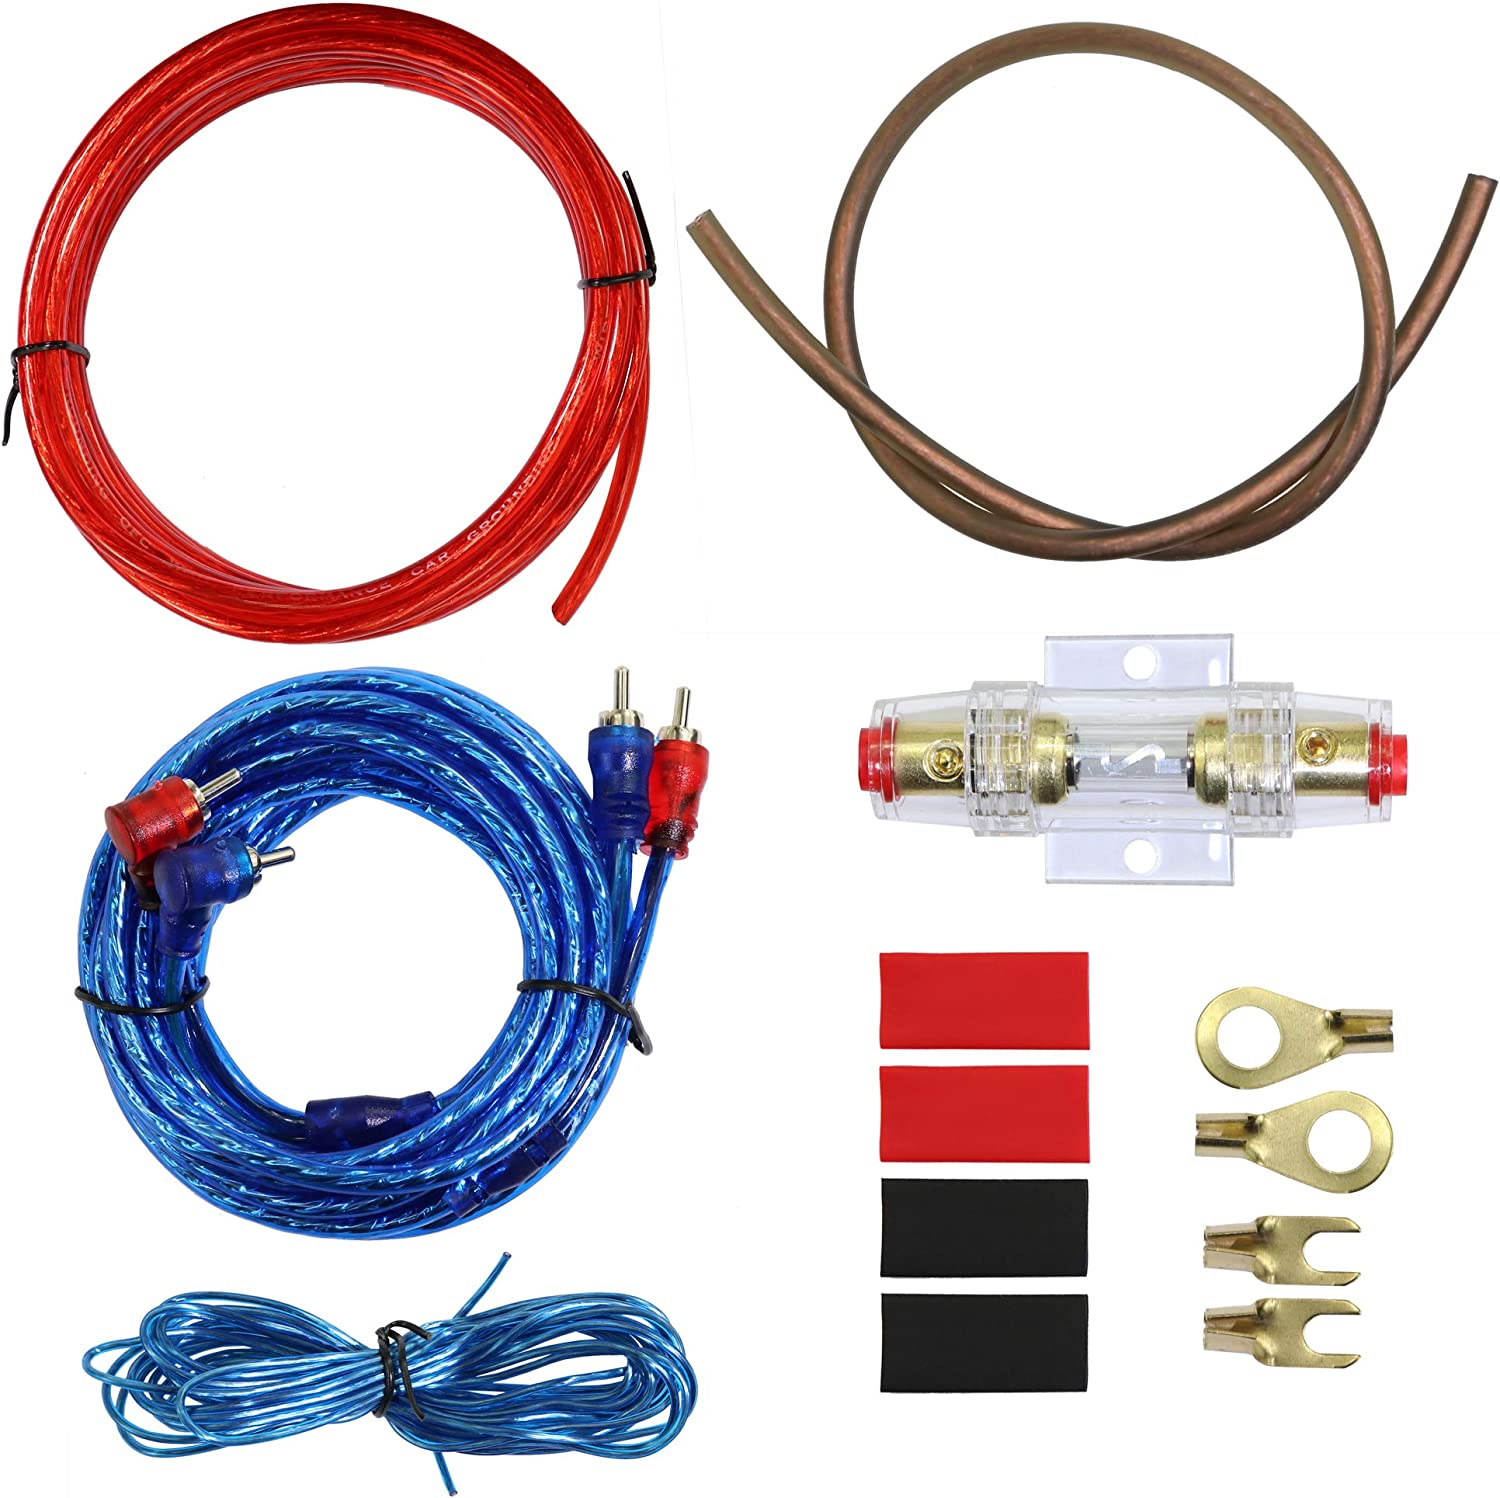 subs and amp wiring amazon com 10 gauge car amp wiring kit    welugnal a car amplifier  amazon com 10 gauge car amp wiring kit